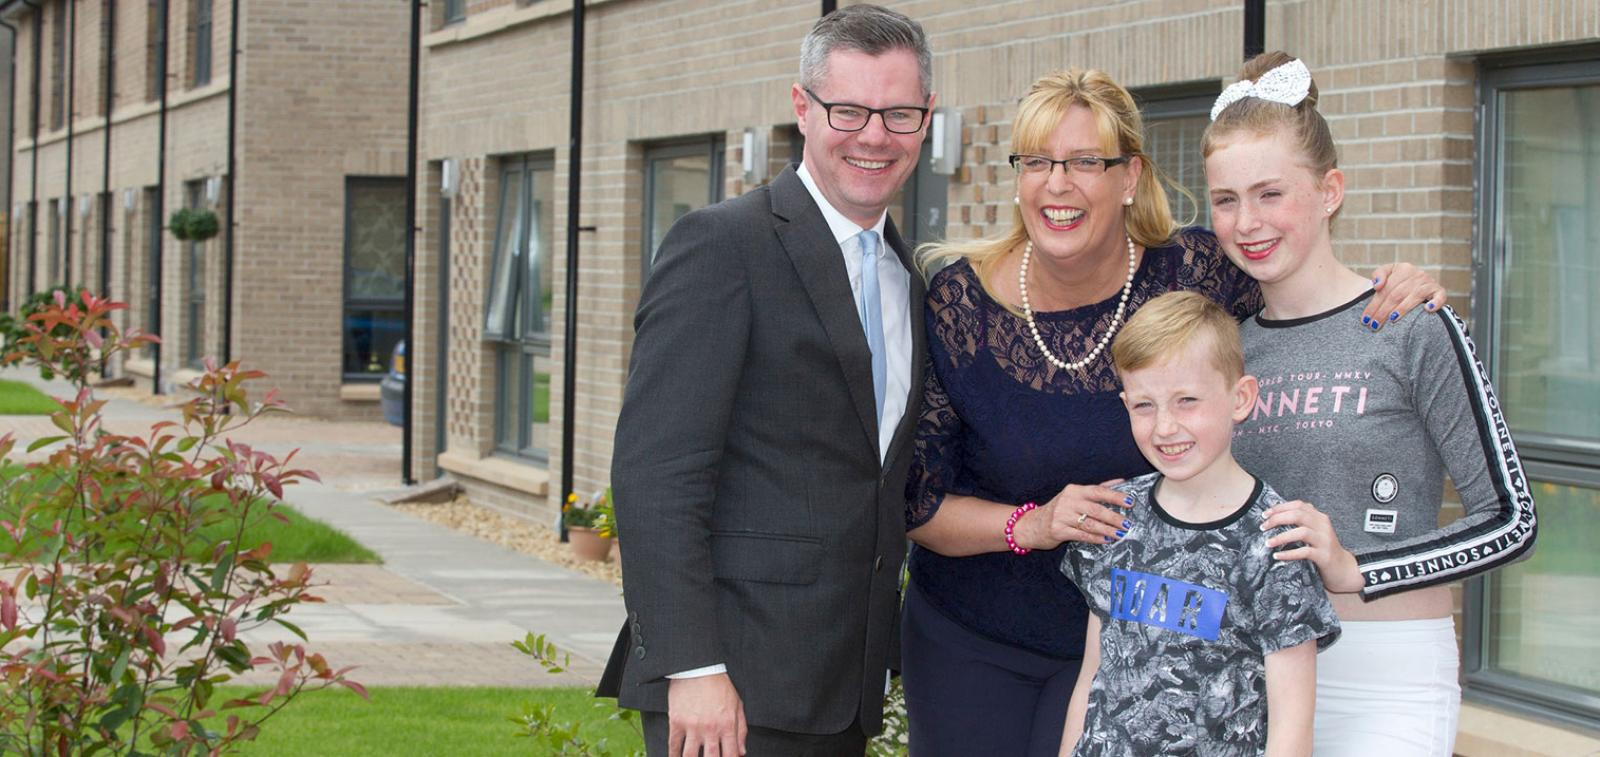 Derek Mackay MSP with new Sanctuary tenant Christine Pert, her son Rory and daughter Daisy.